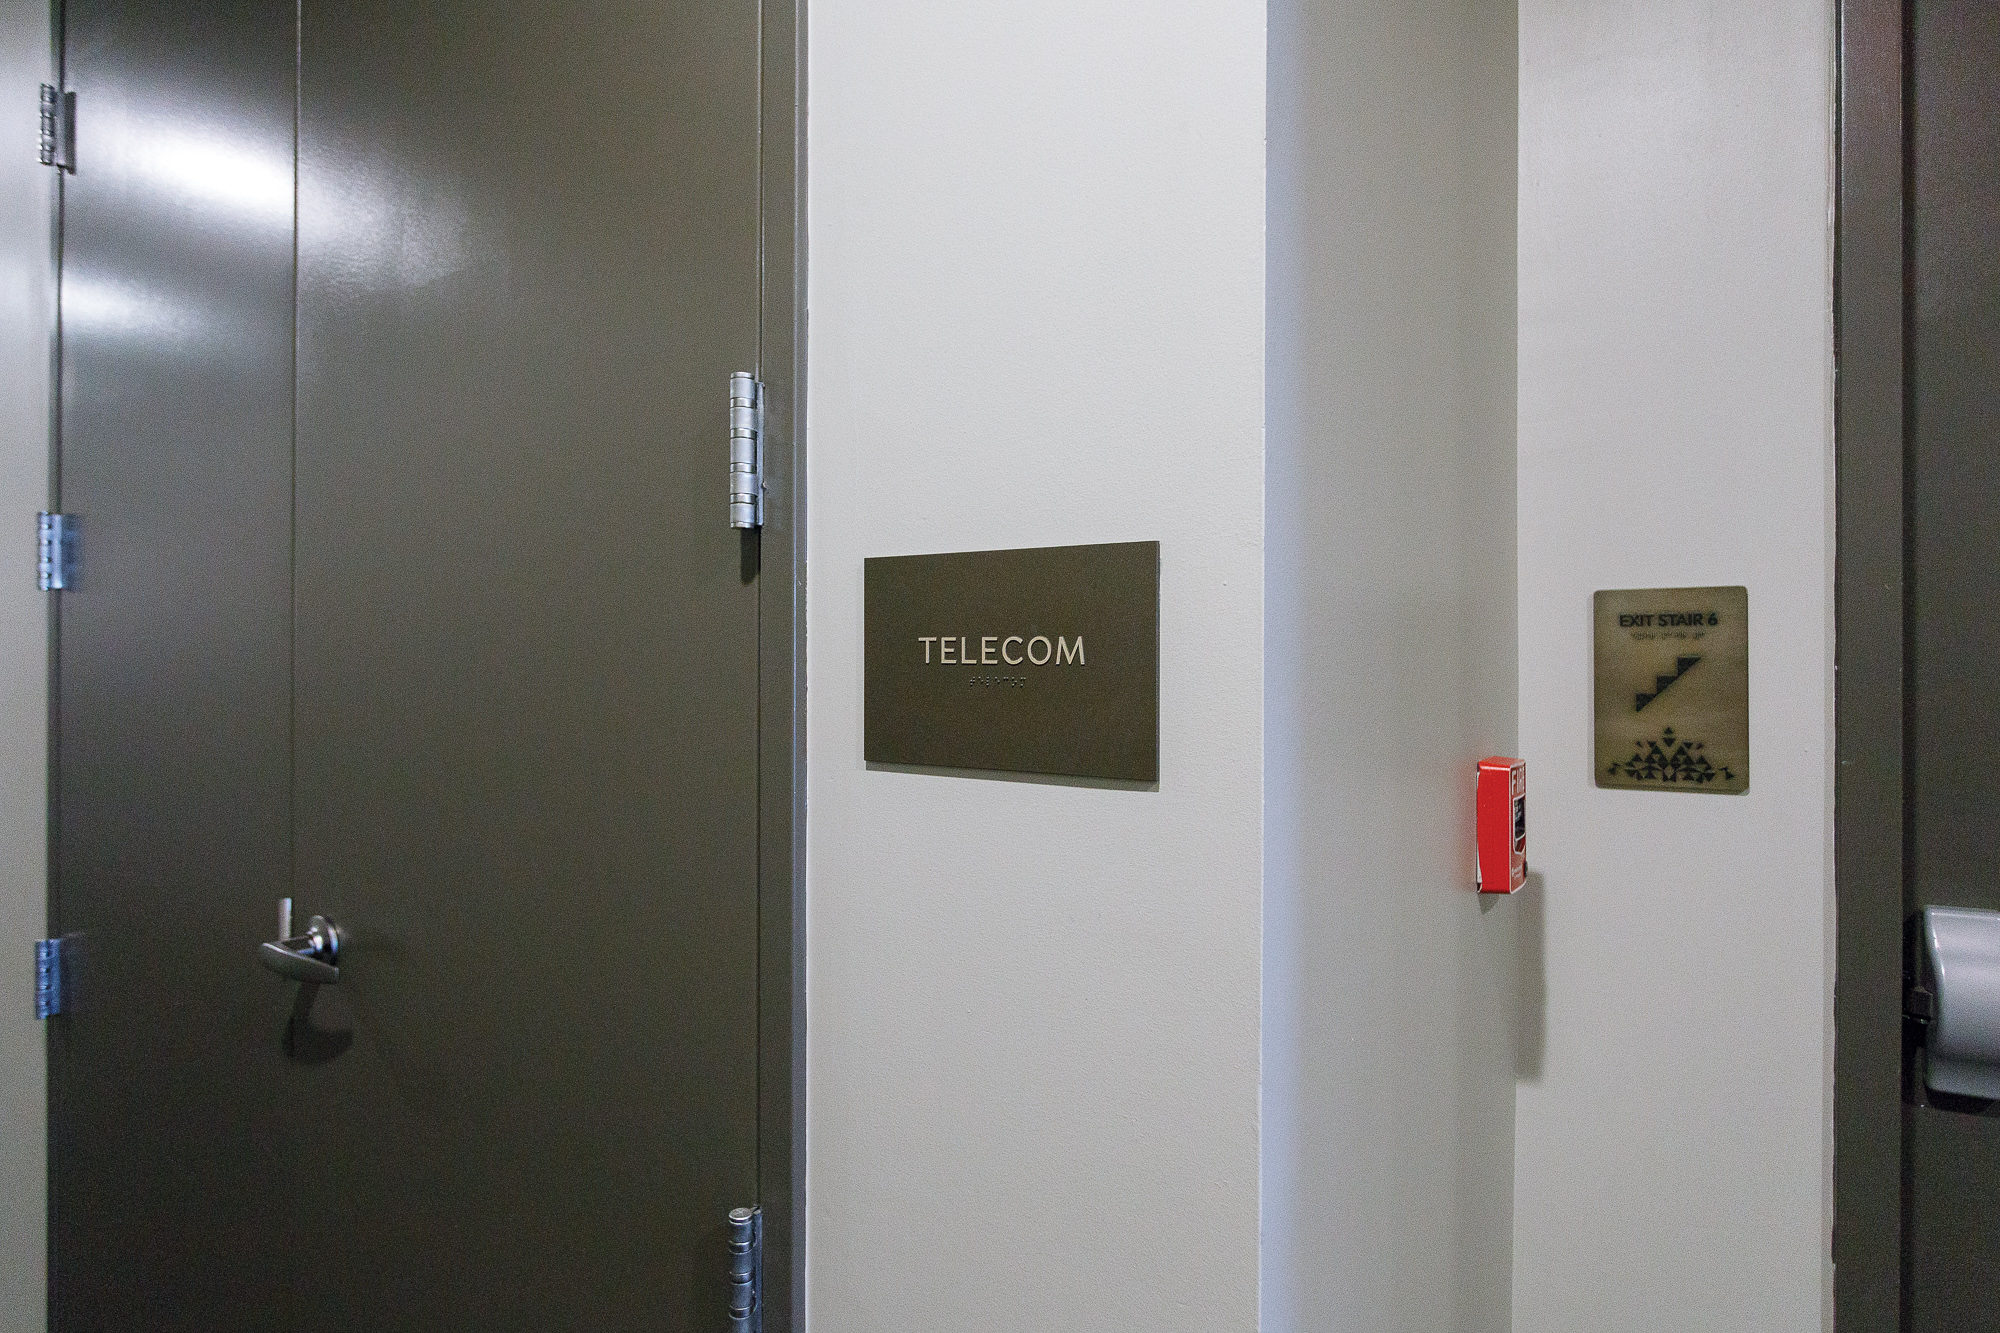 Vertis-Green-Hills_Signage_Required by Building Codes_Telecom_MG_5297_small 2000 px.jpg